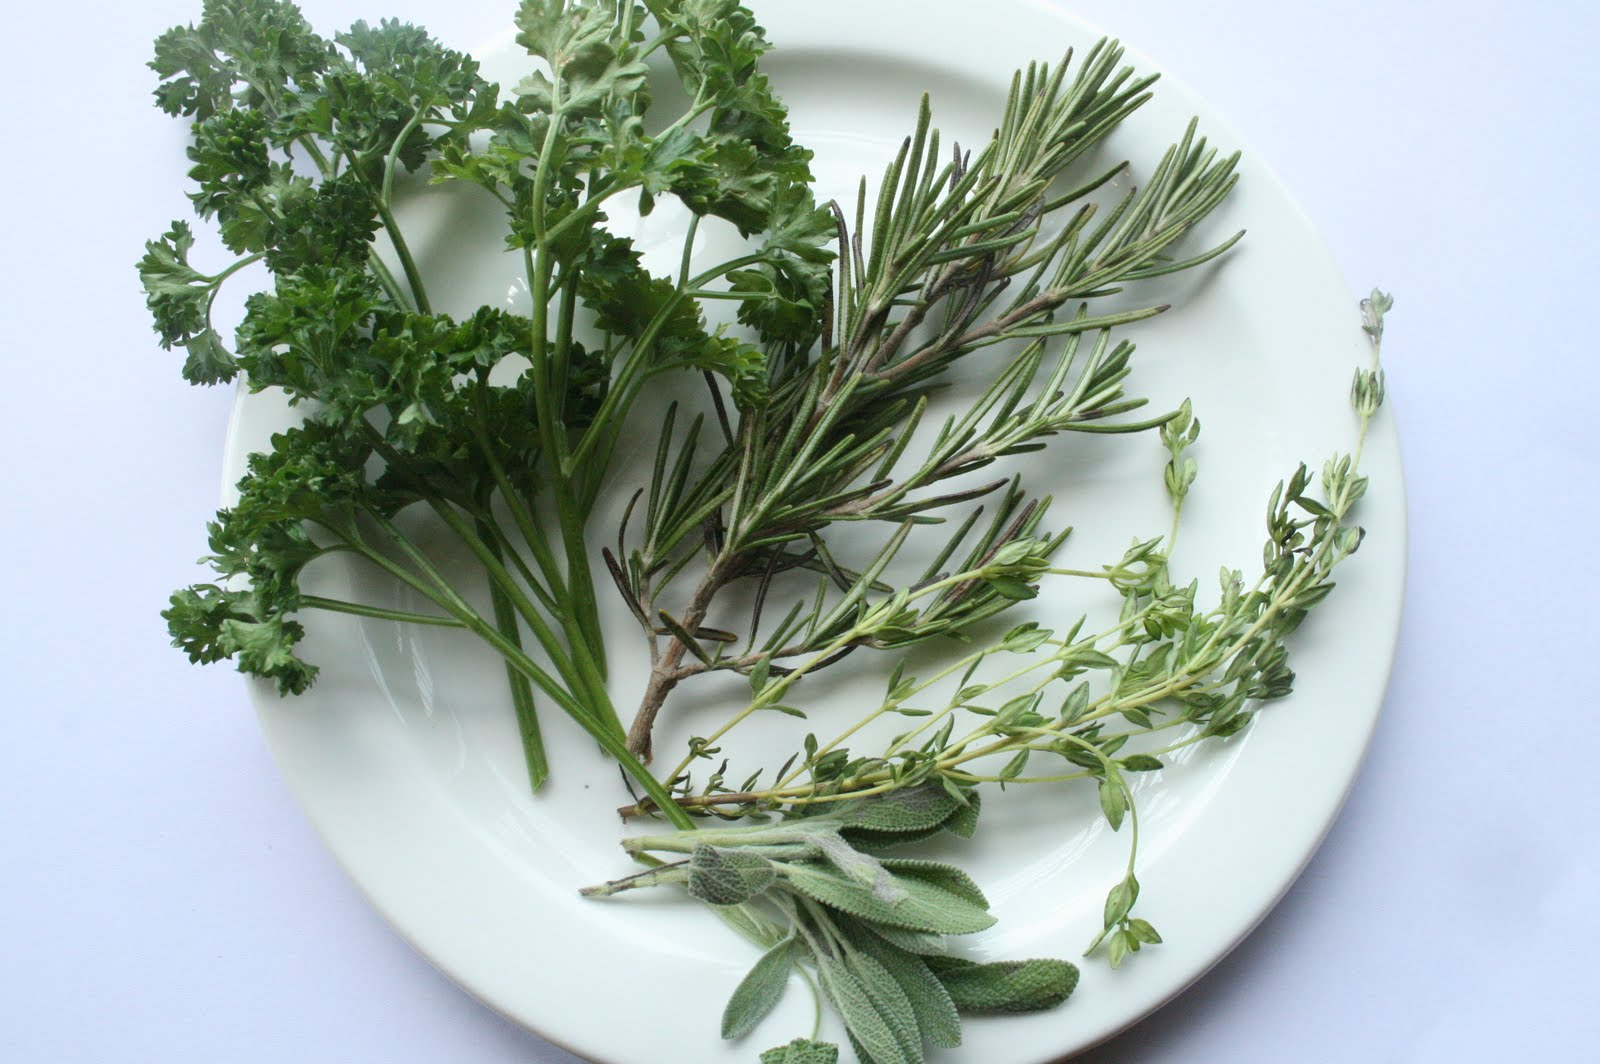 Italian Seasoning or Rub (Parsley, Sage, Rosemary & Thyme)